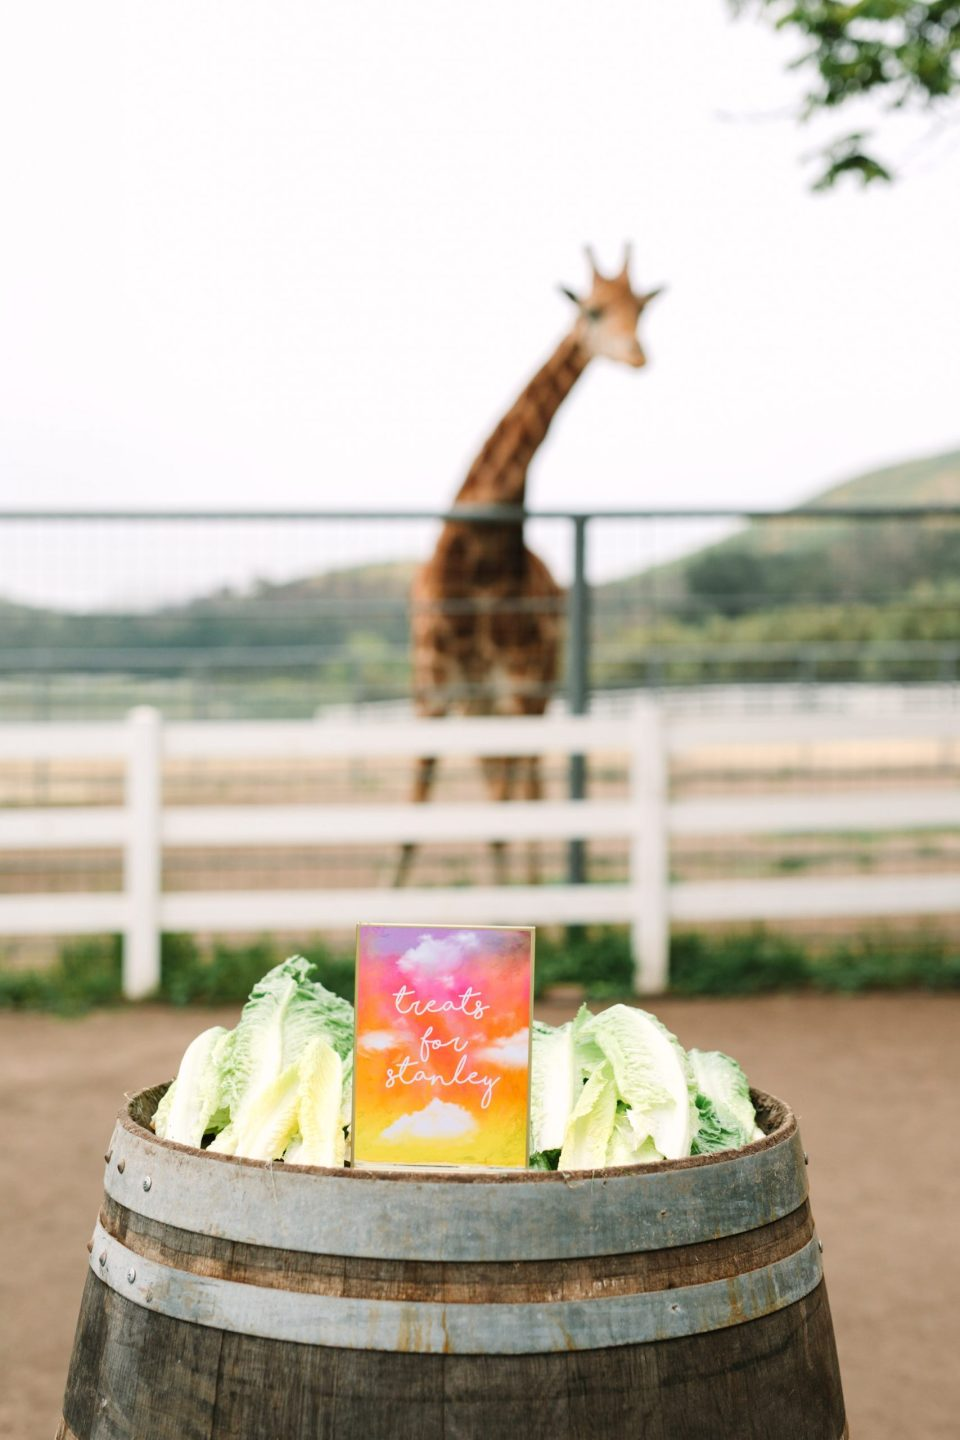 Stanley the giraffe's lettuce snacks by Mary Costa Photography